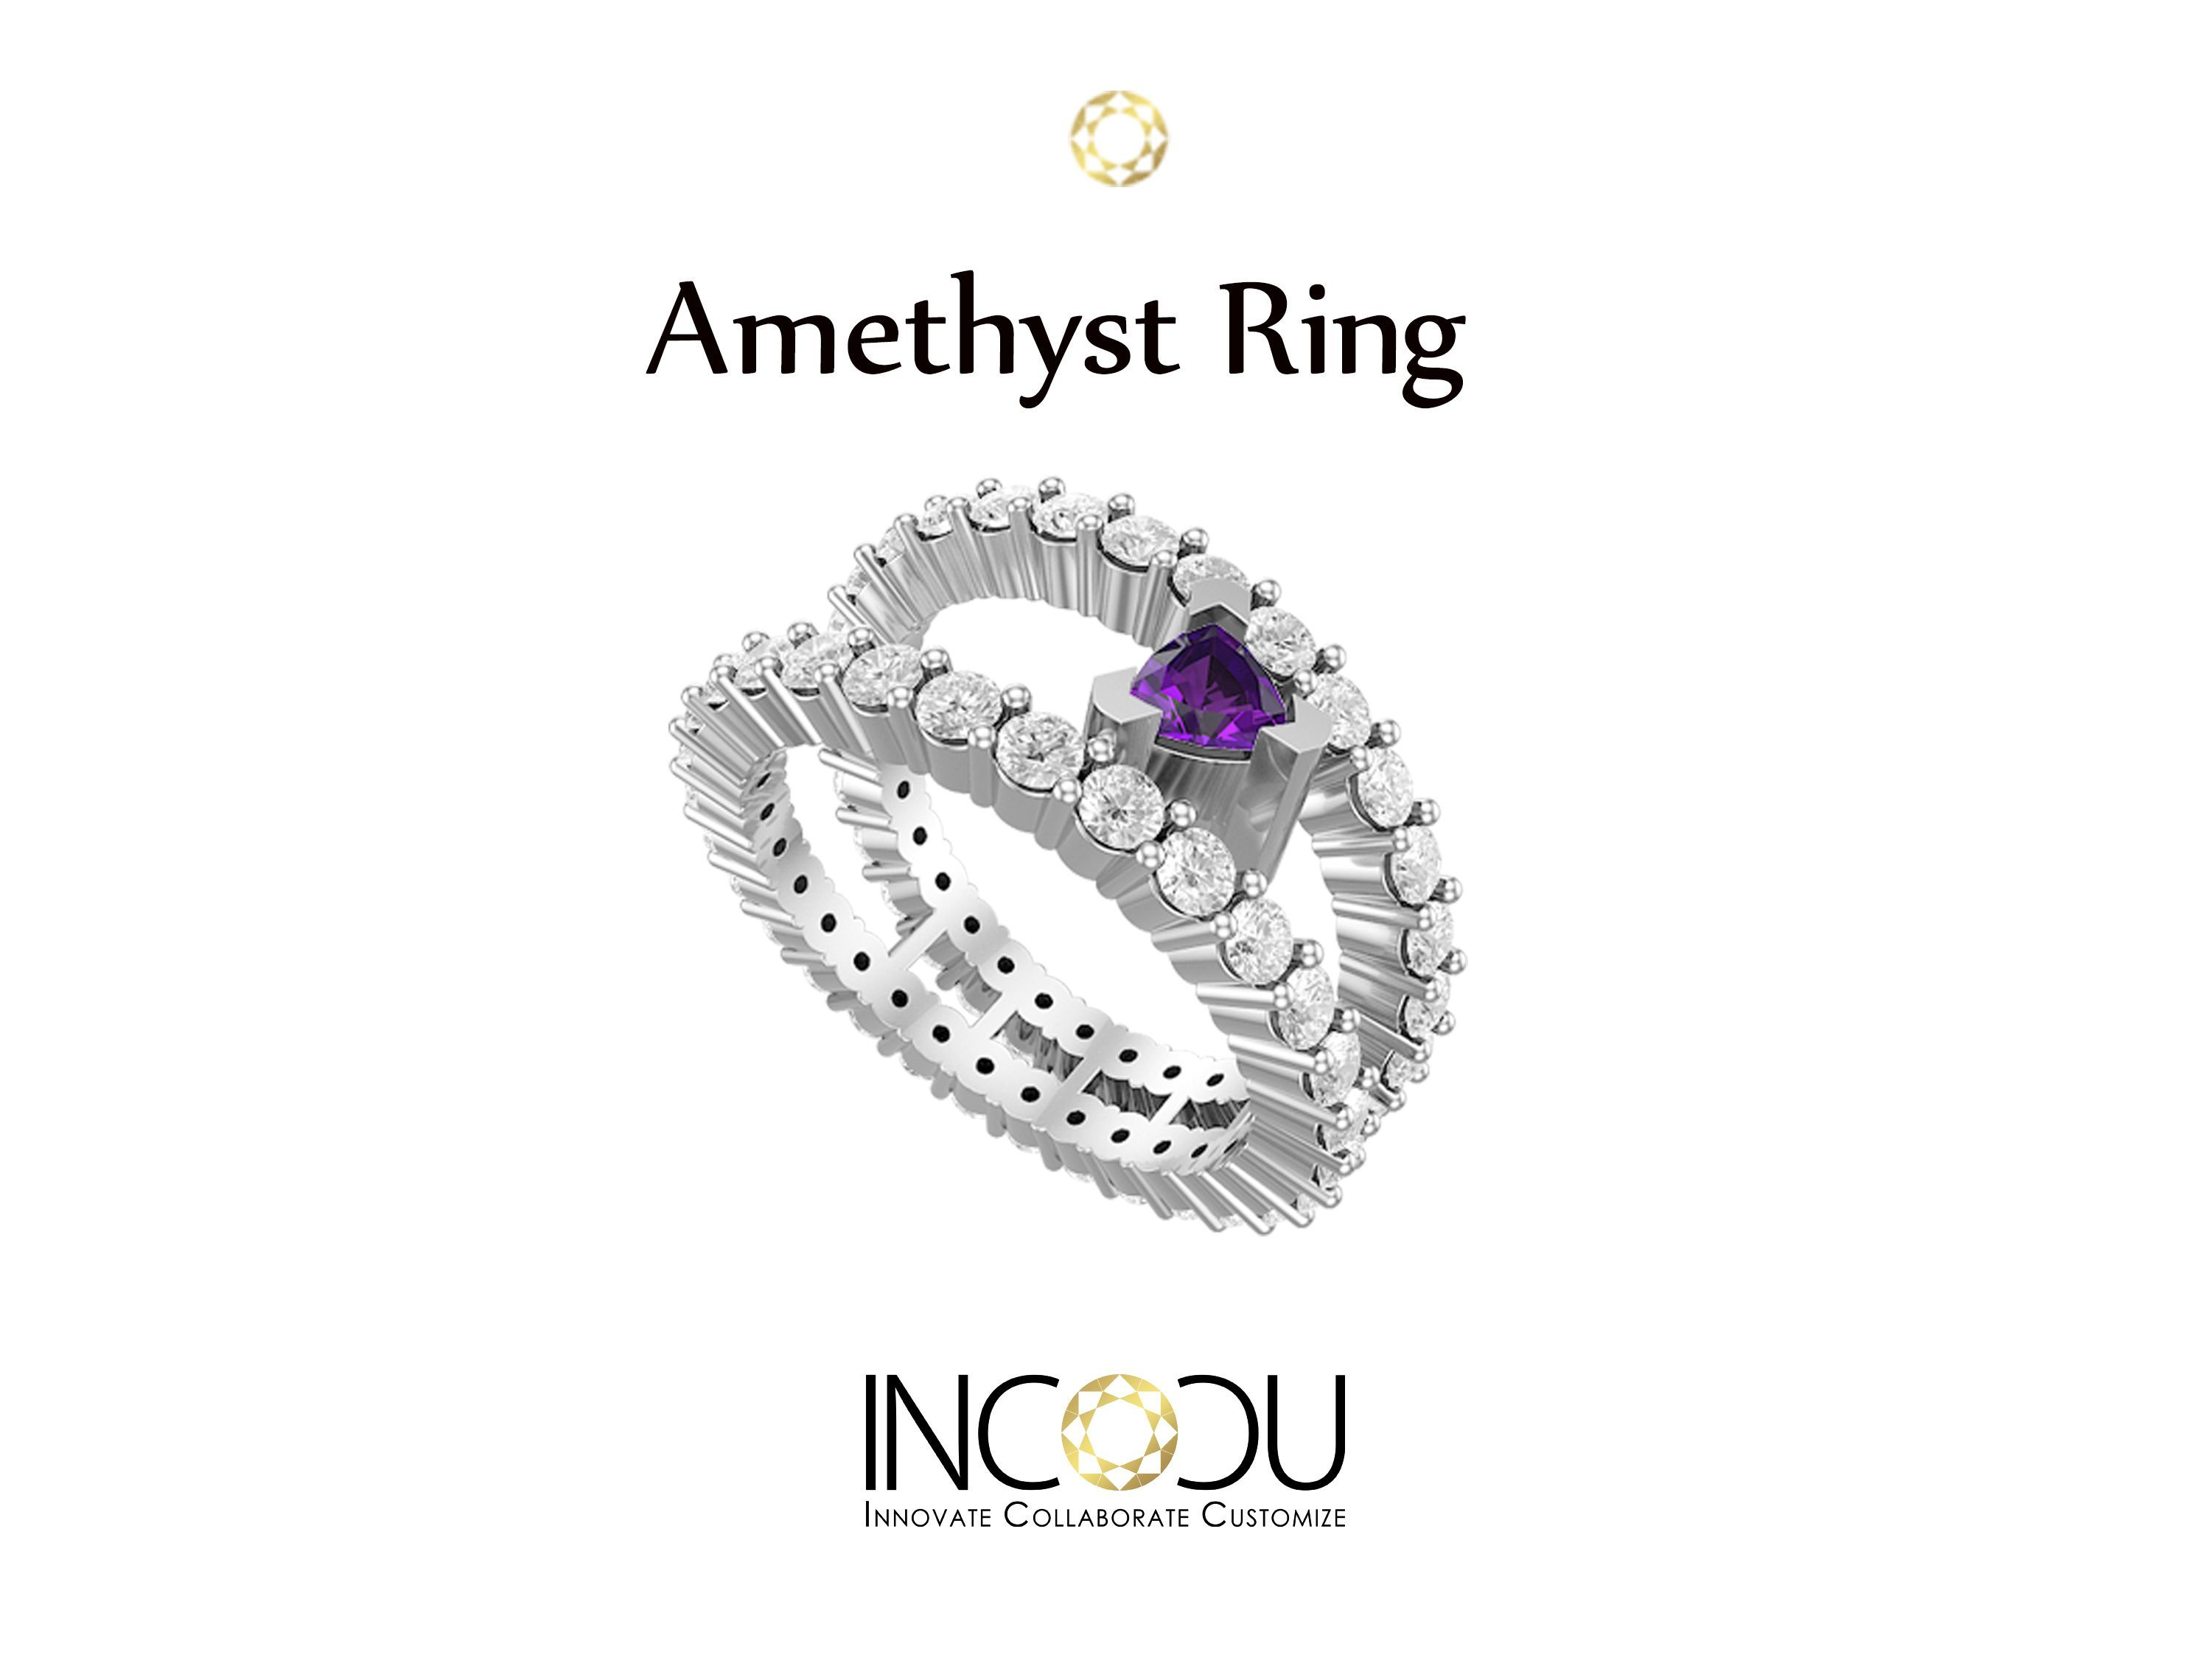 The perfect blend of exclusivity and royalty.  #Amethyst #AmethystRing #Ring #Whitegold #Order #Diamond #Shopping #Incocu